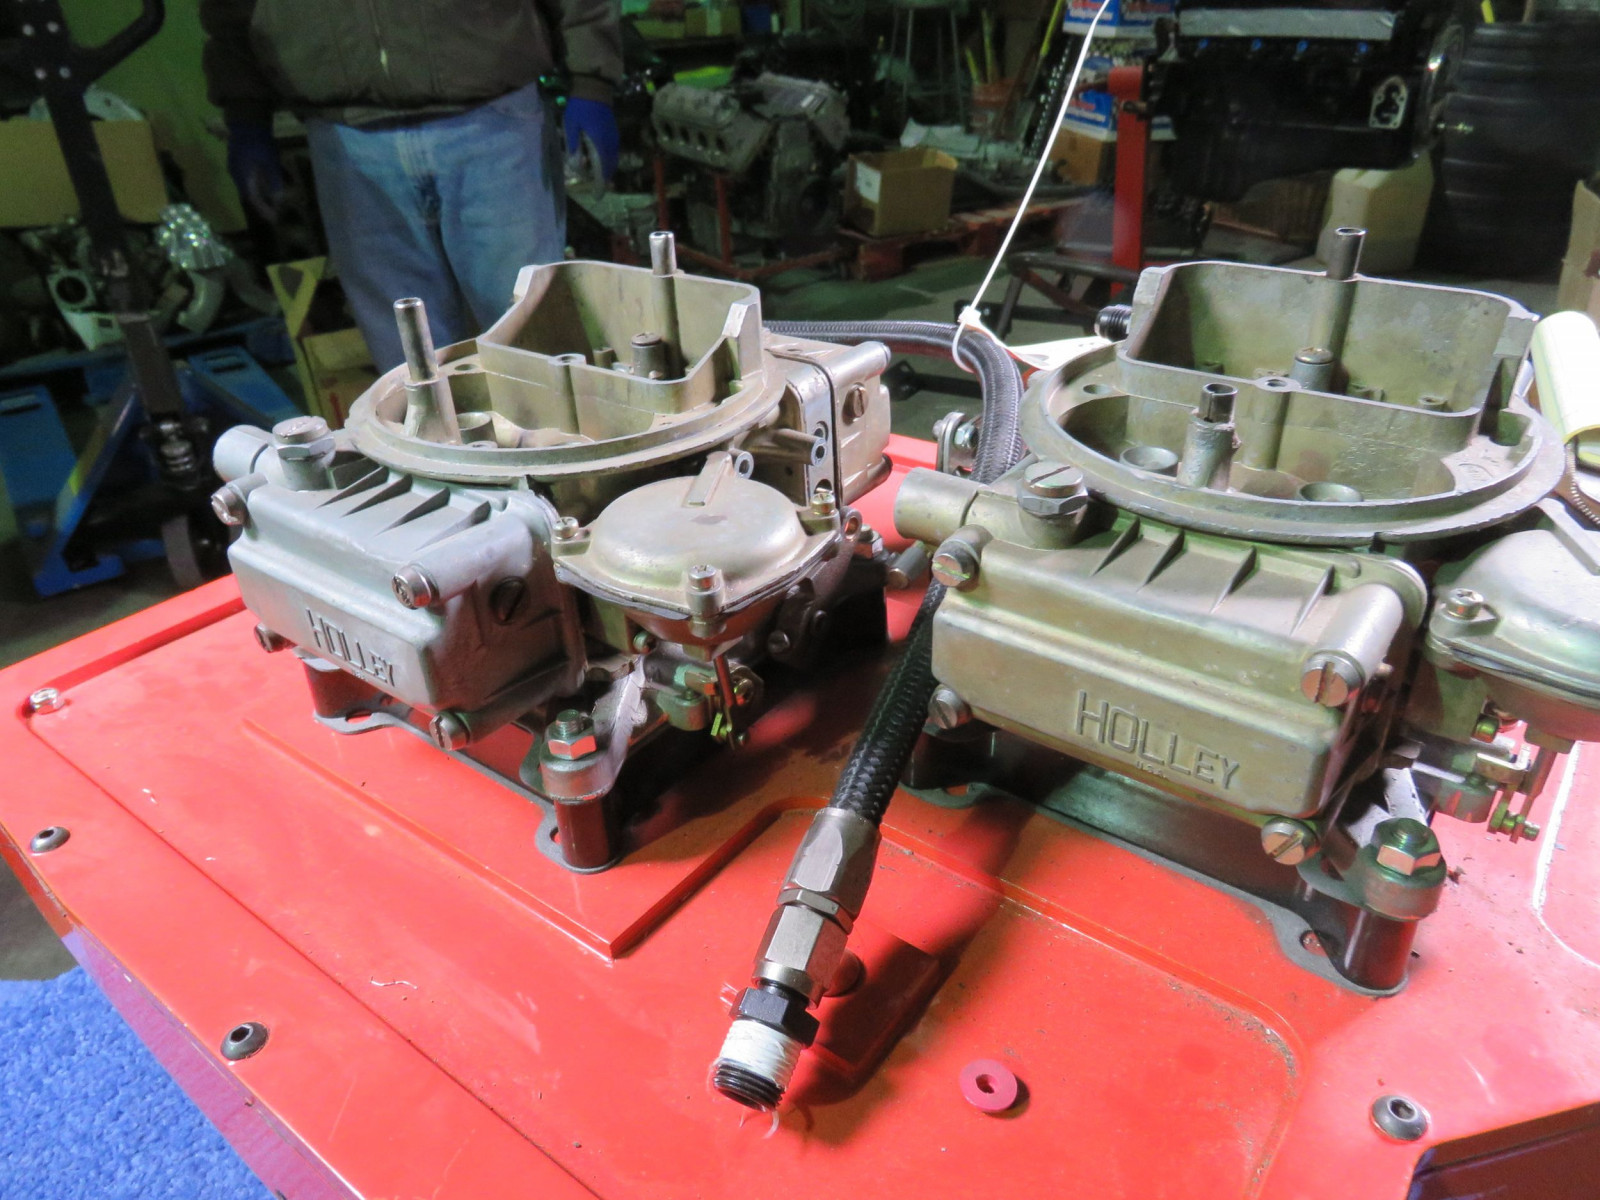 426 Hemi Cross Ram Wedge 2-4bbl Carb Set UP with Ray Barton Intake Plate - Image 6